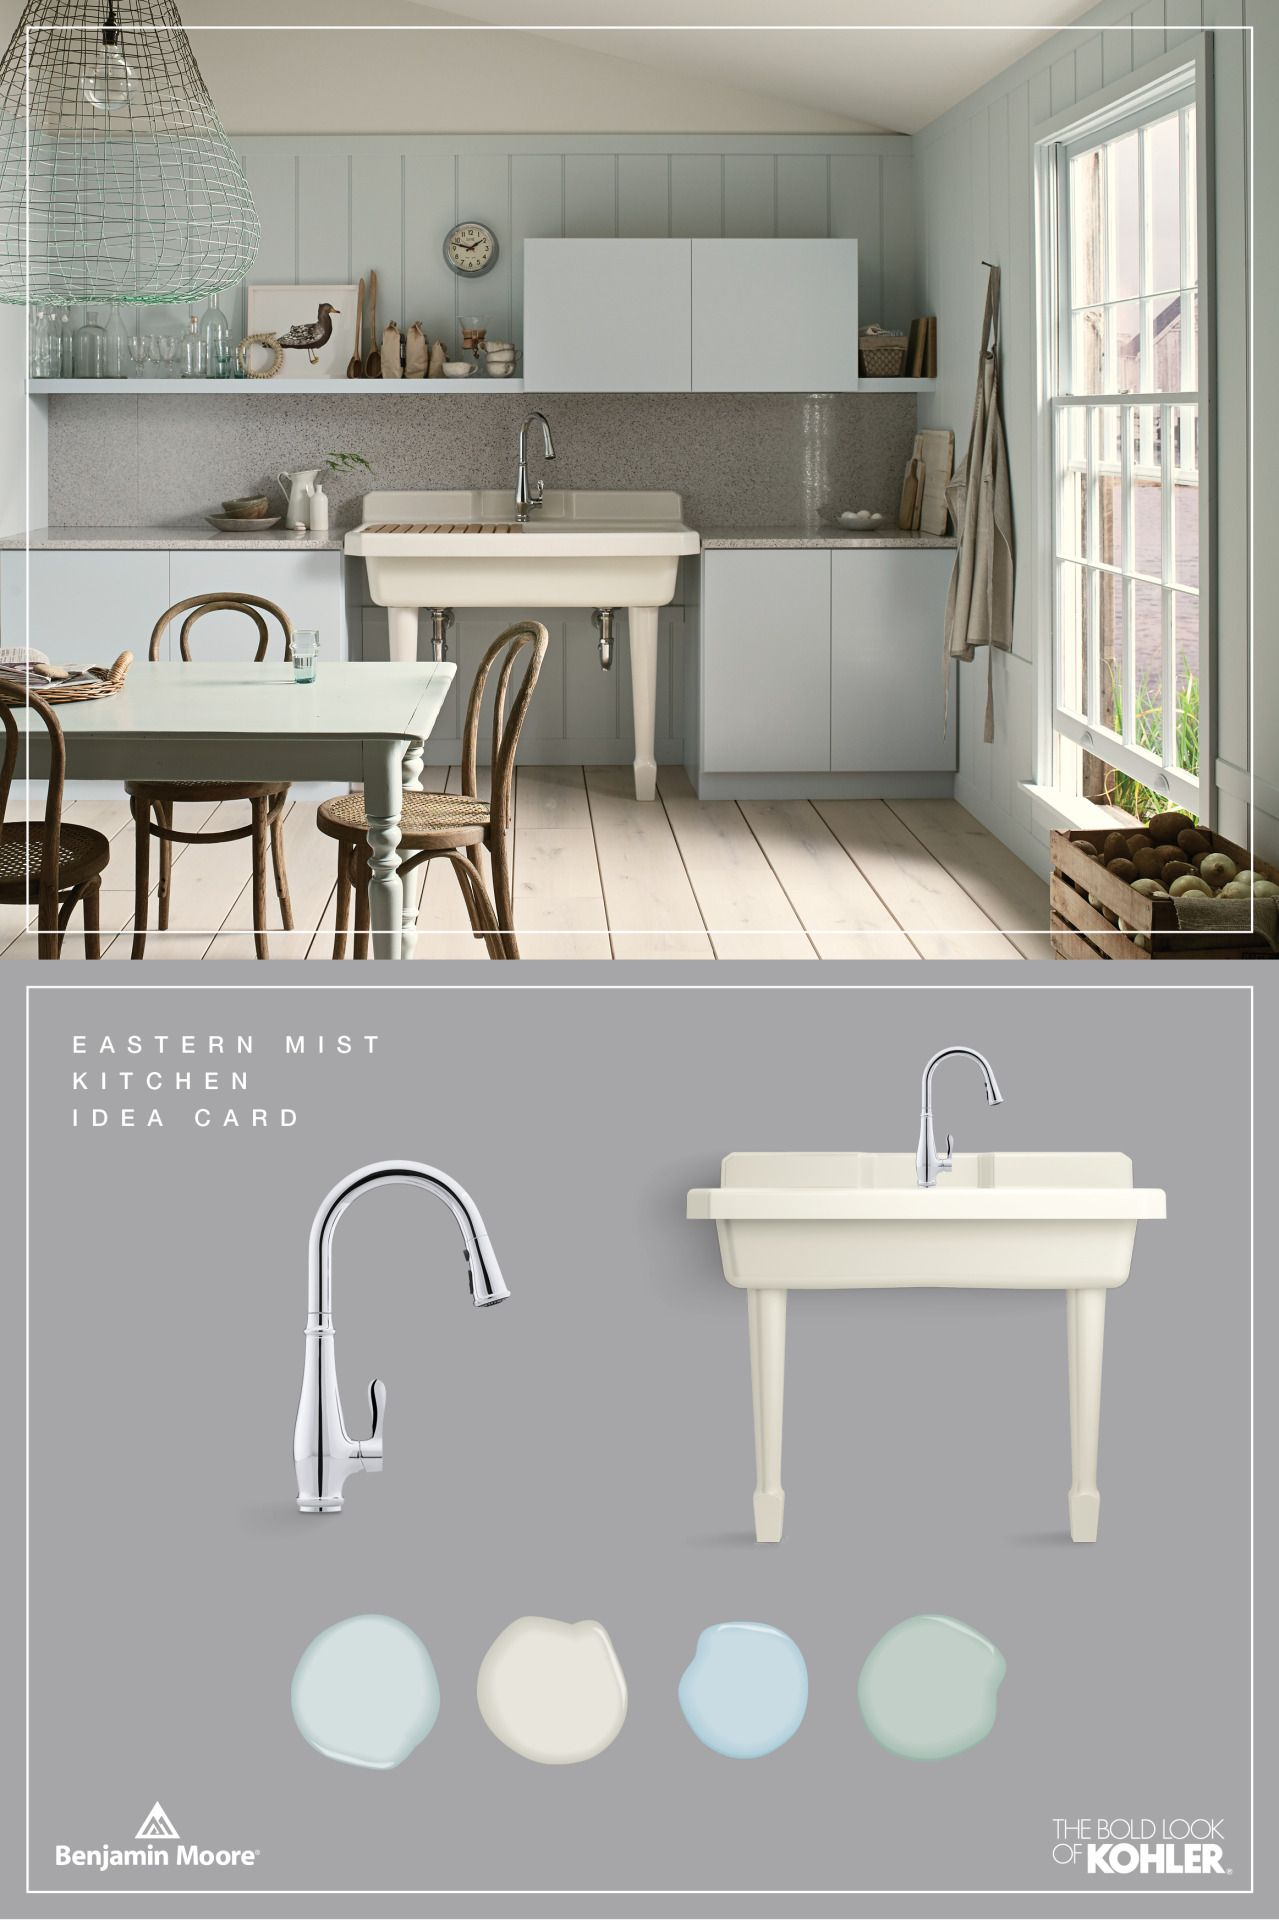 kohler products cruette kitchen faucet harborview utility sink kohler products cruette kitchen faucet harborview utility sink benjamin moore paint iceberg cloud cover breath of